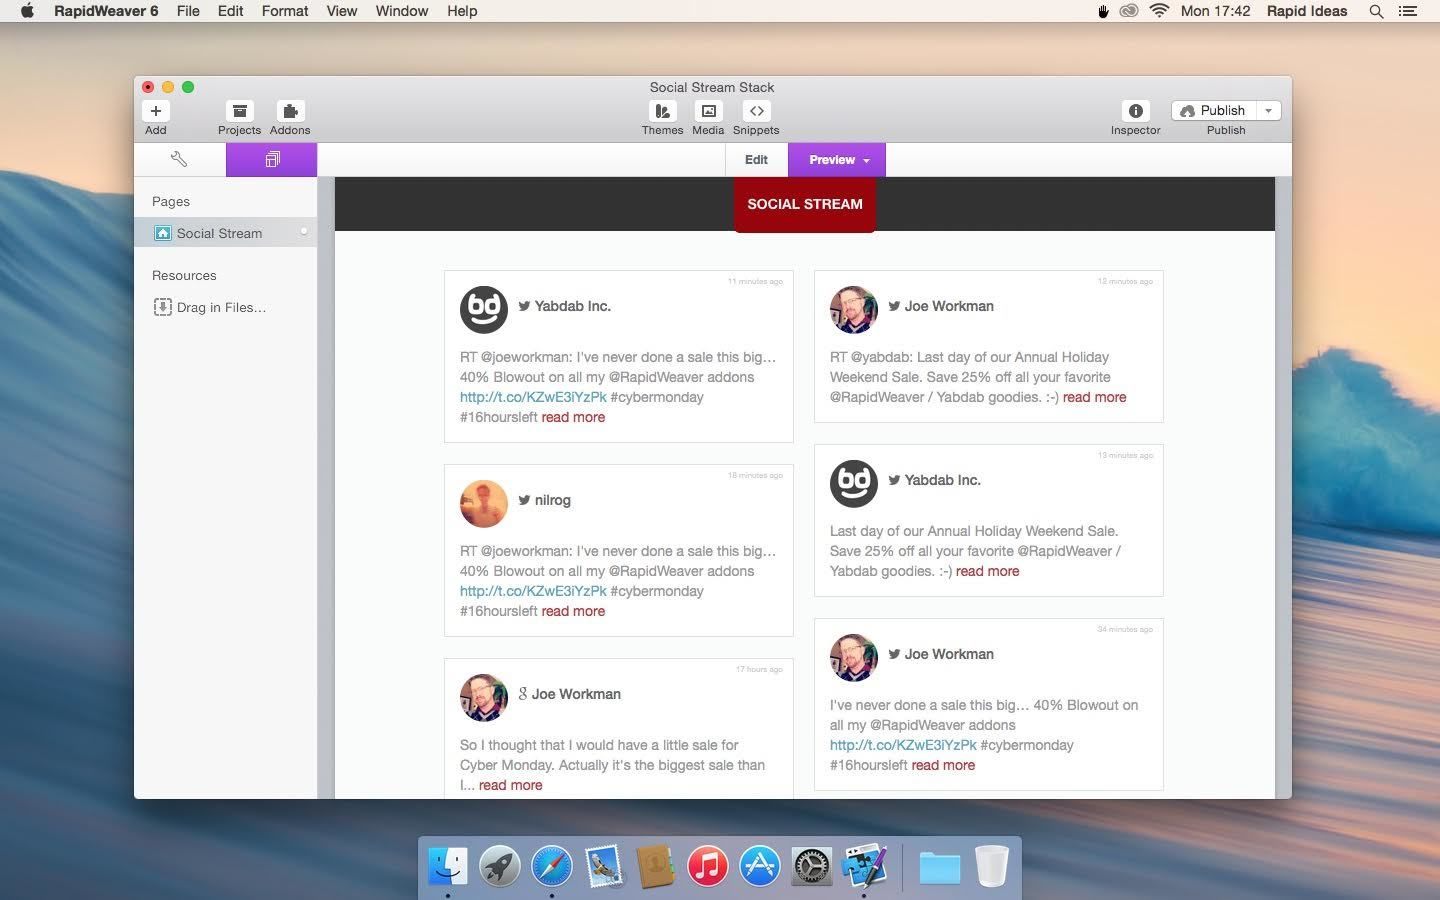 Screenshot 1 for Social Stream Stack